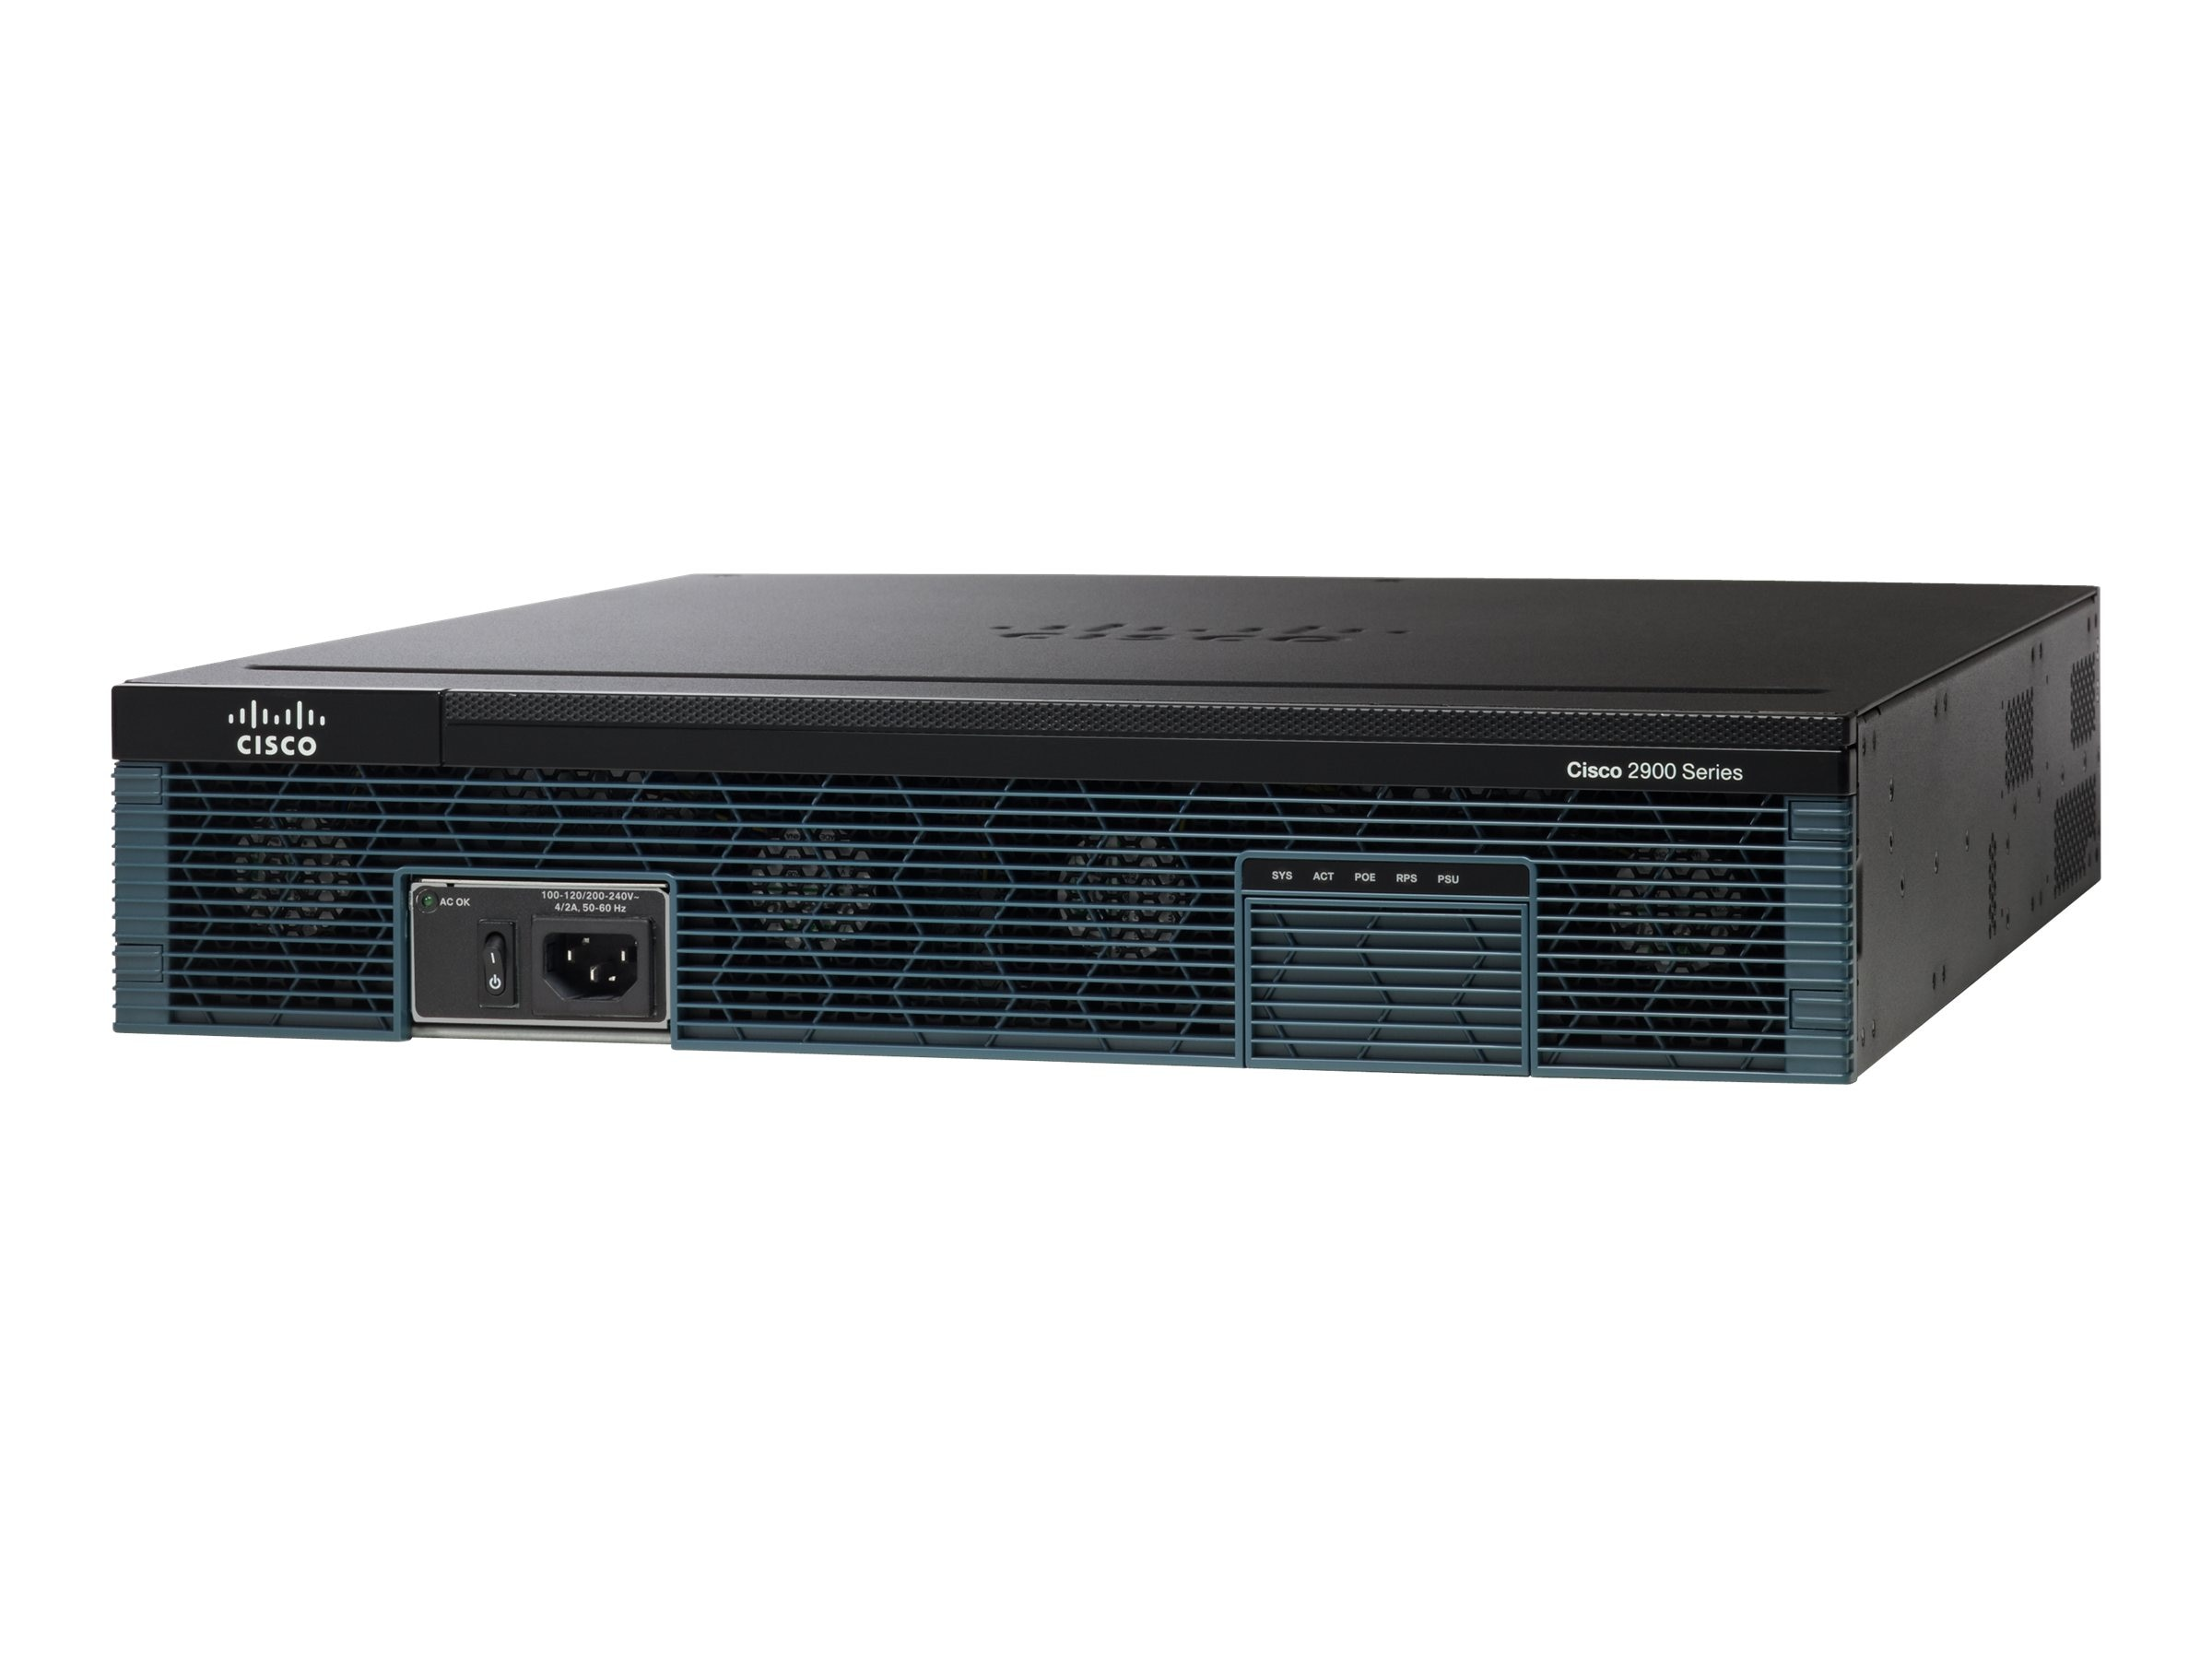 Cisco 2921 w  3 GE 4 EHWIC3 DSP1-256MB CF 512MB DRAM IPB, CISCO2921/K9, 10696671, Network Routers